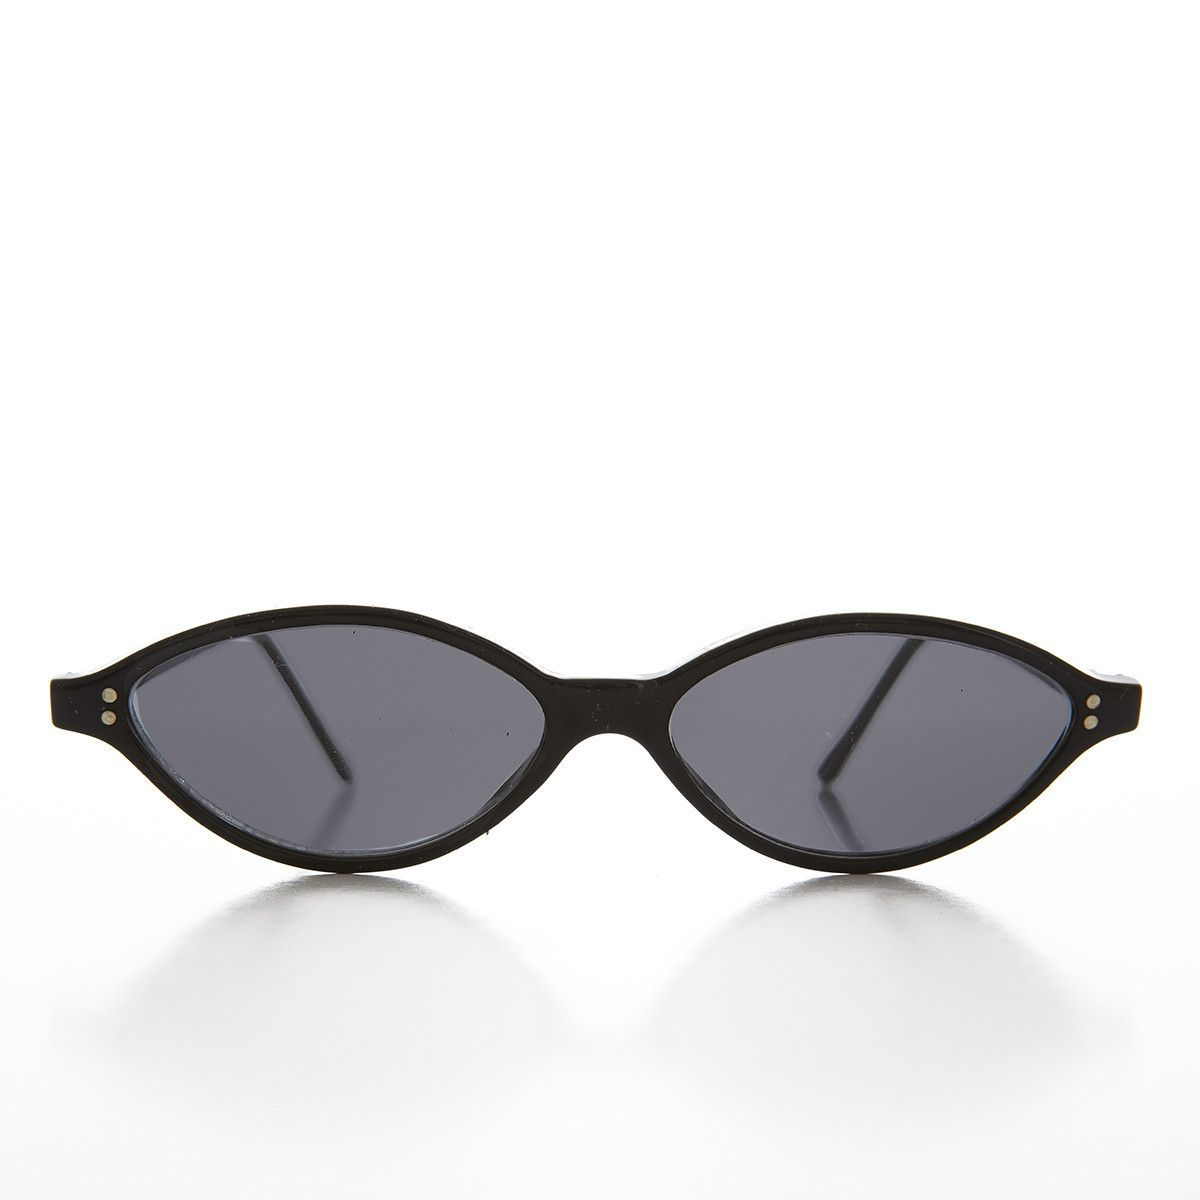 f17c6b96197a Sleek and distinct these stylish cat eye sunglasses feature oval shaped  lenses with dual frame end rivets. Made from acetate and metal hinges and  optically ...